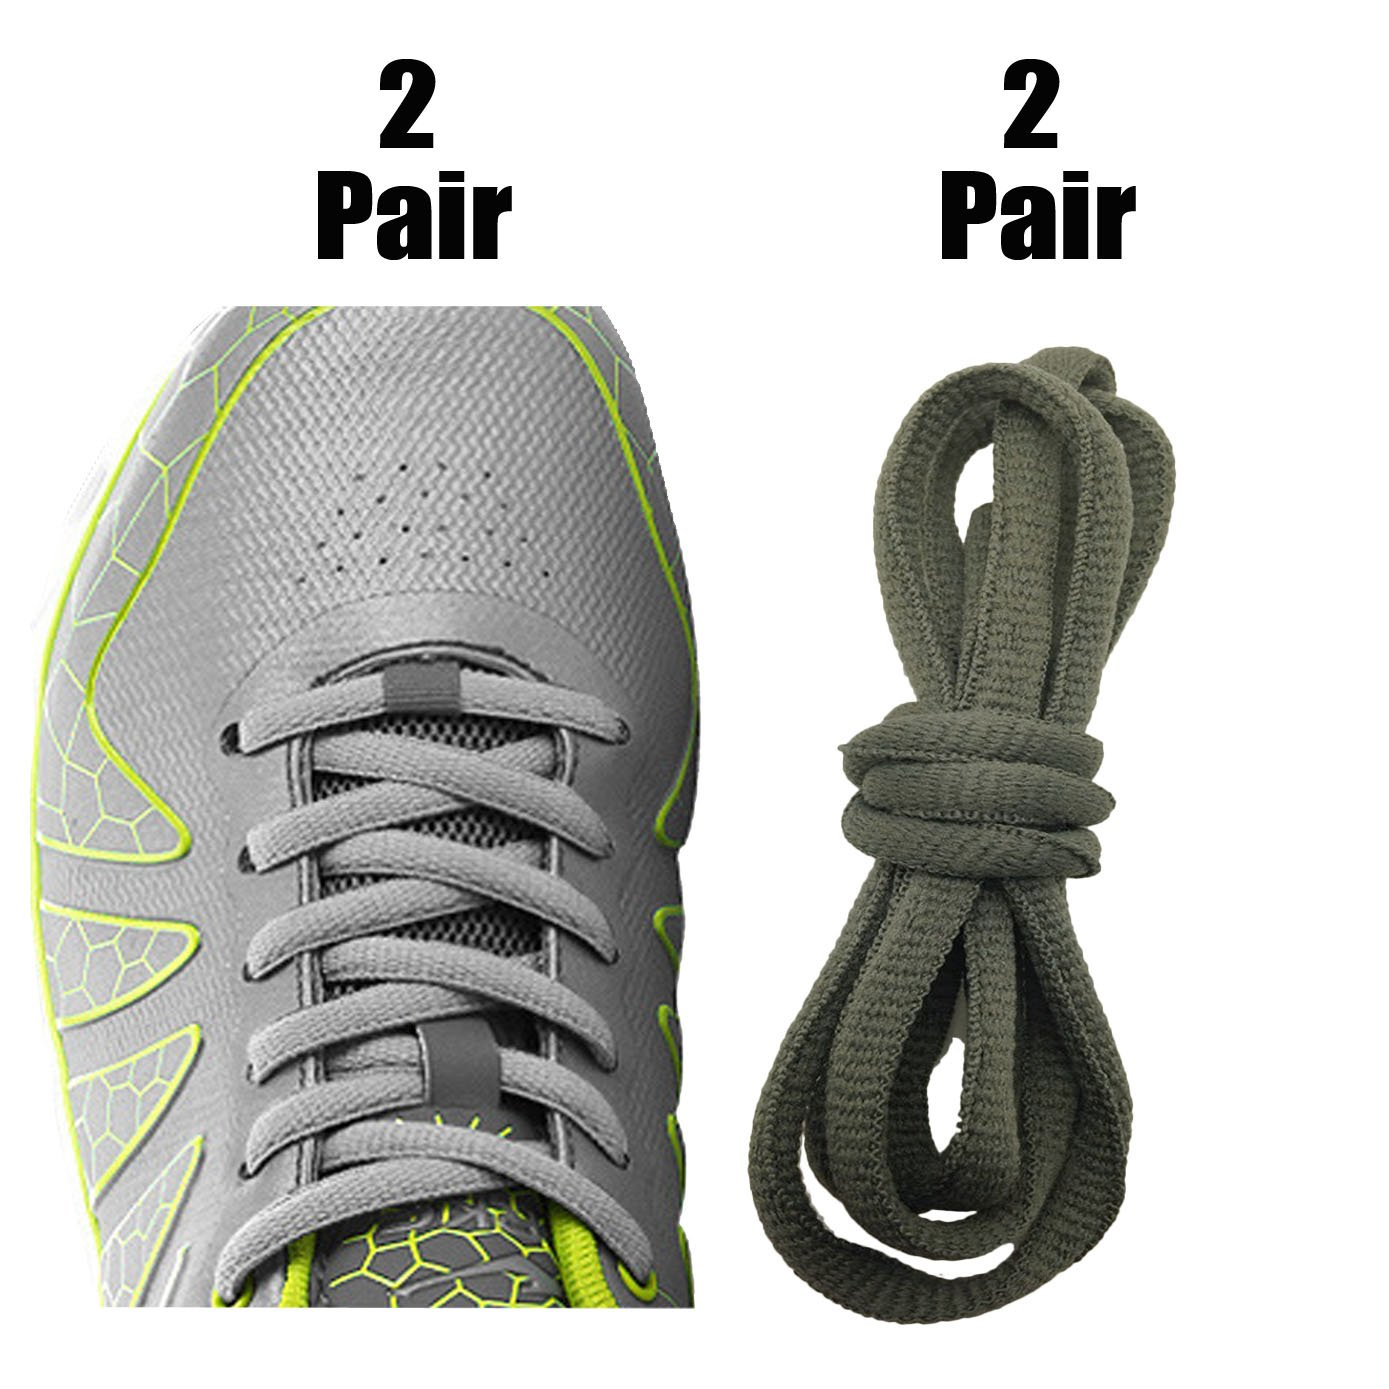 [4 Pairs] Replacement Shoelaces Shoe Laces,iBarbe Strings 45'' Long x 1/4'' Wide,Strong Shoe Laces for Men,Women, Kids&Seniors for Running Sports Sneakers Boots Skates Shoes Casual Shoes-Gray+Green